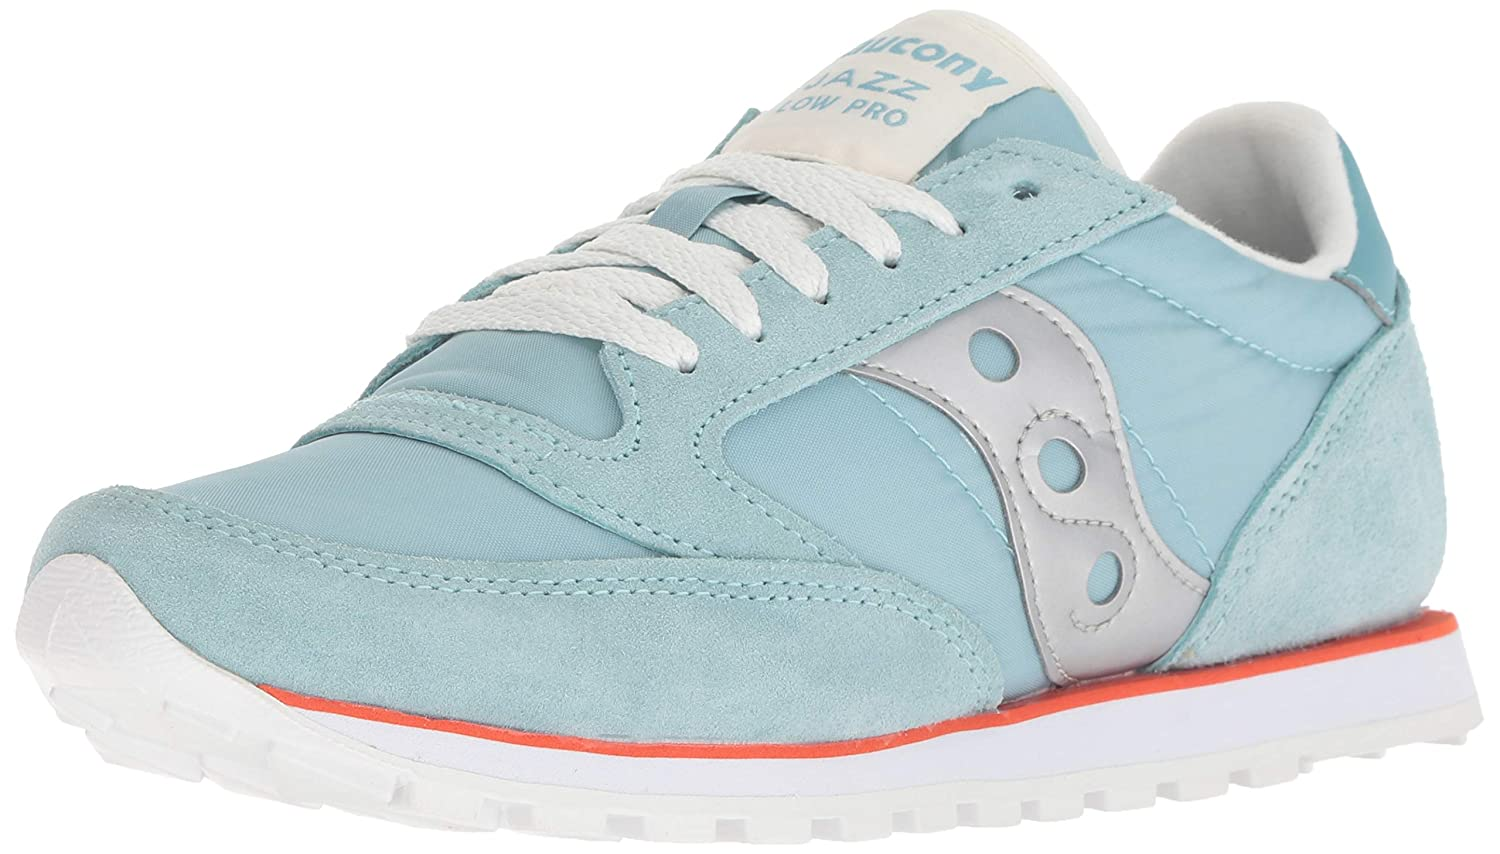 Seafoam orange Silver Saucony Originals Women's Jazz Lowpro Sneakers